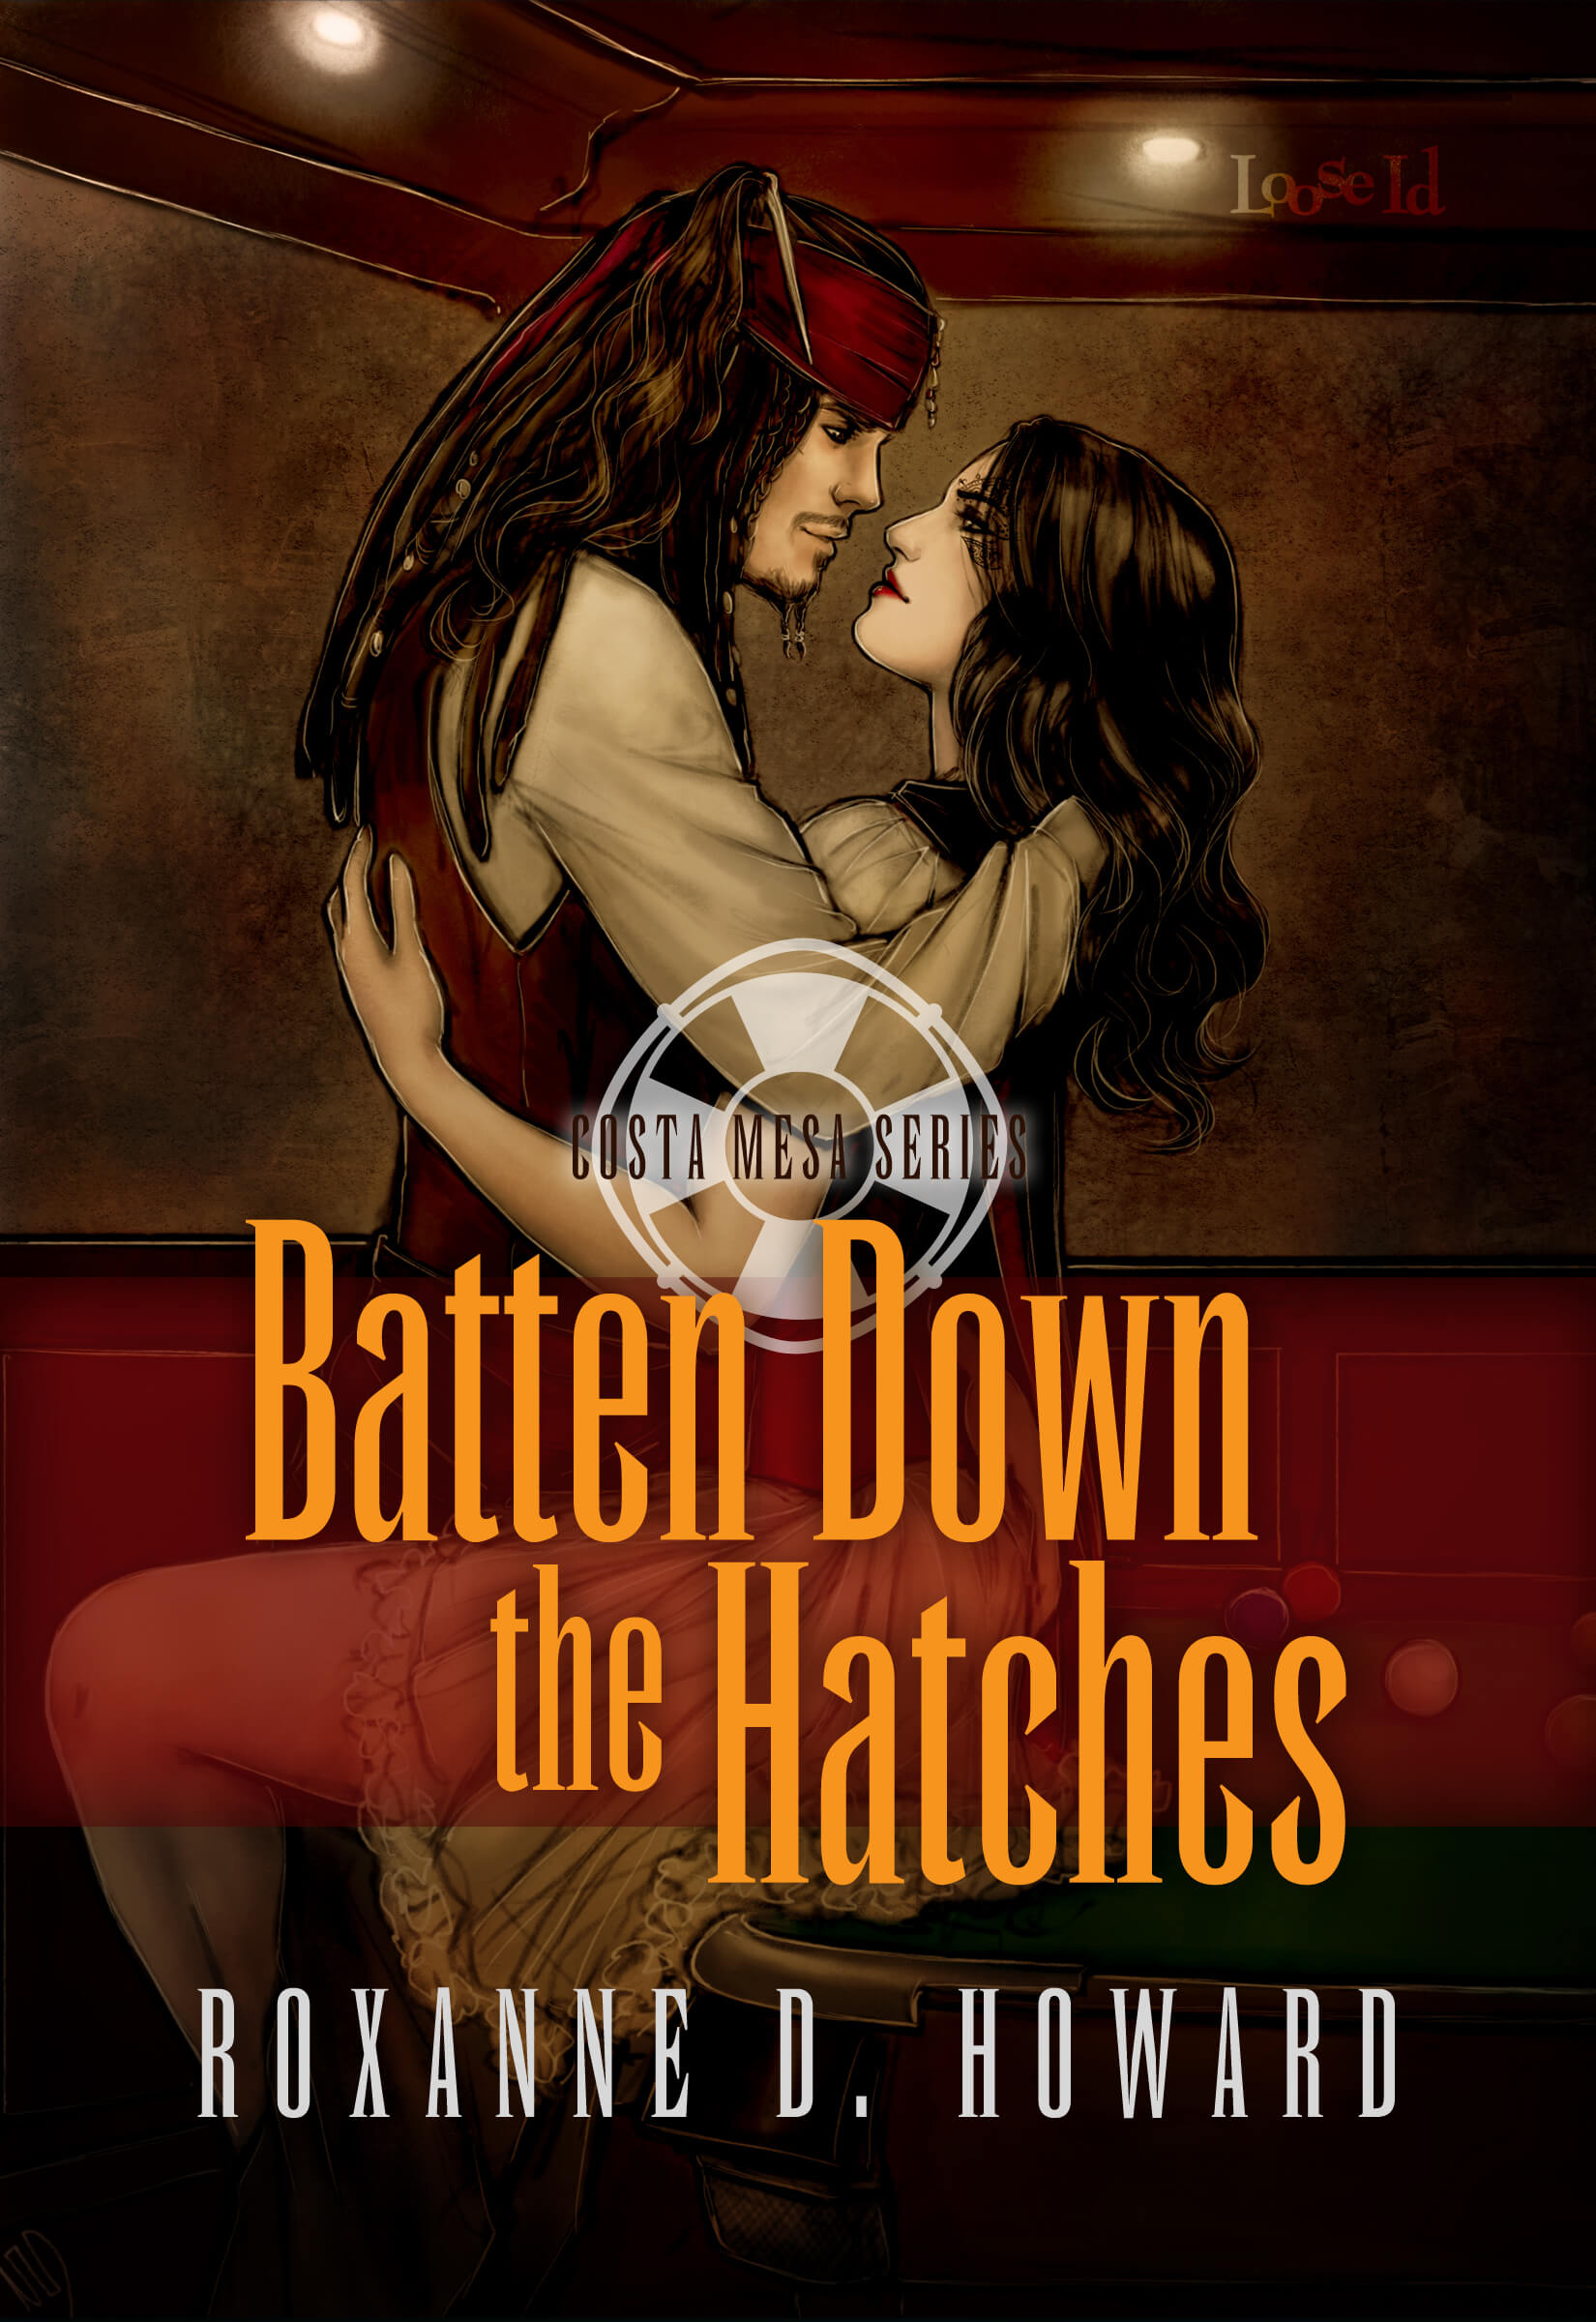 Cover Reveal for Batten Down the Hatches